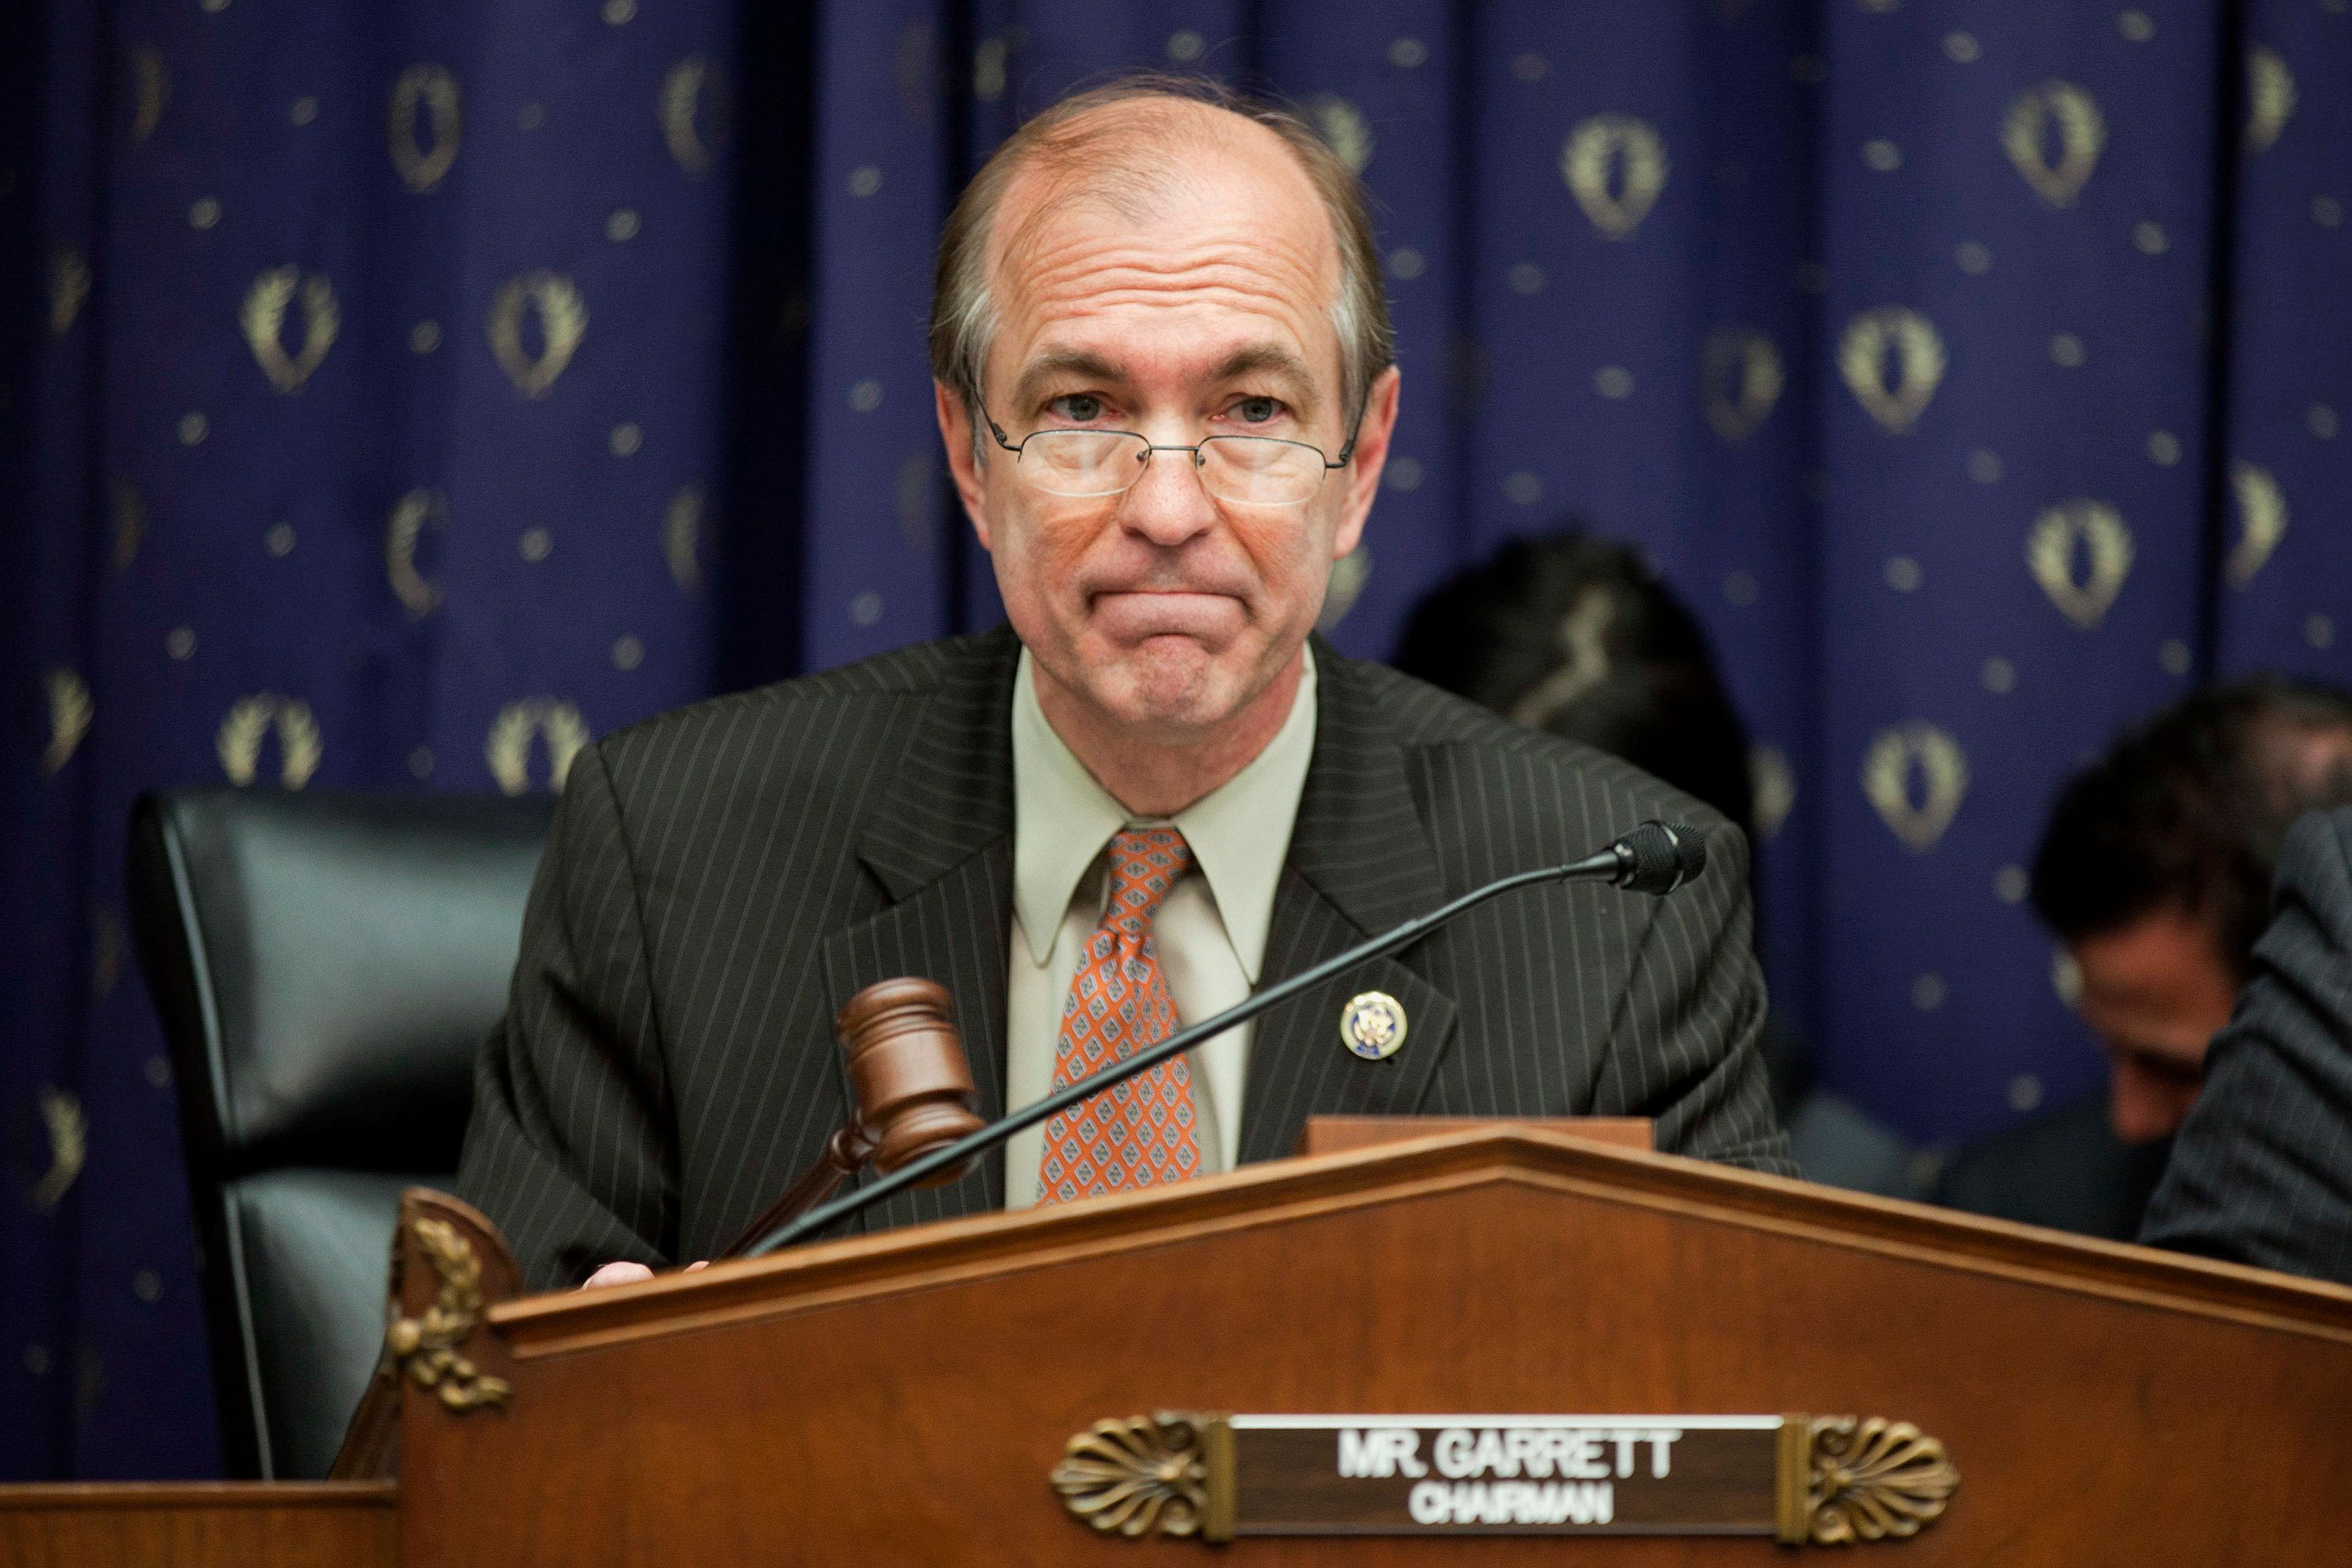 Representative Scott Garrett, a Republican from New Jersey, waits to start a House Financial Services Committee hearing in Washington, D.C., U.S., on Wednesday, April 25, 2012. Securities and Exchange Commission Chairman Mary Schapiro is pressing lawmakers for a $245 million increase in the agency's fiscal 2013 funding. Her request for a $1.57 billion fiscal 2013 appropriation would allow the SEC to hire additional examiners. Photographer: Andrew Harrer/Bloomberg via Getty Images